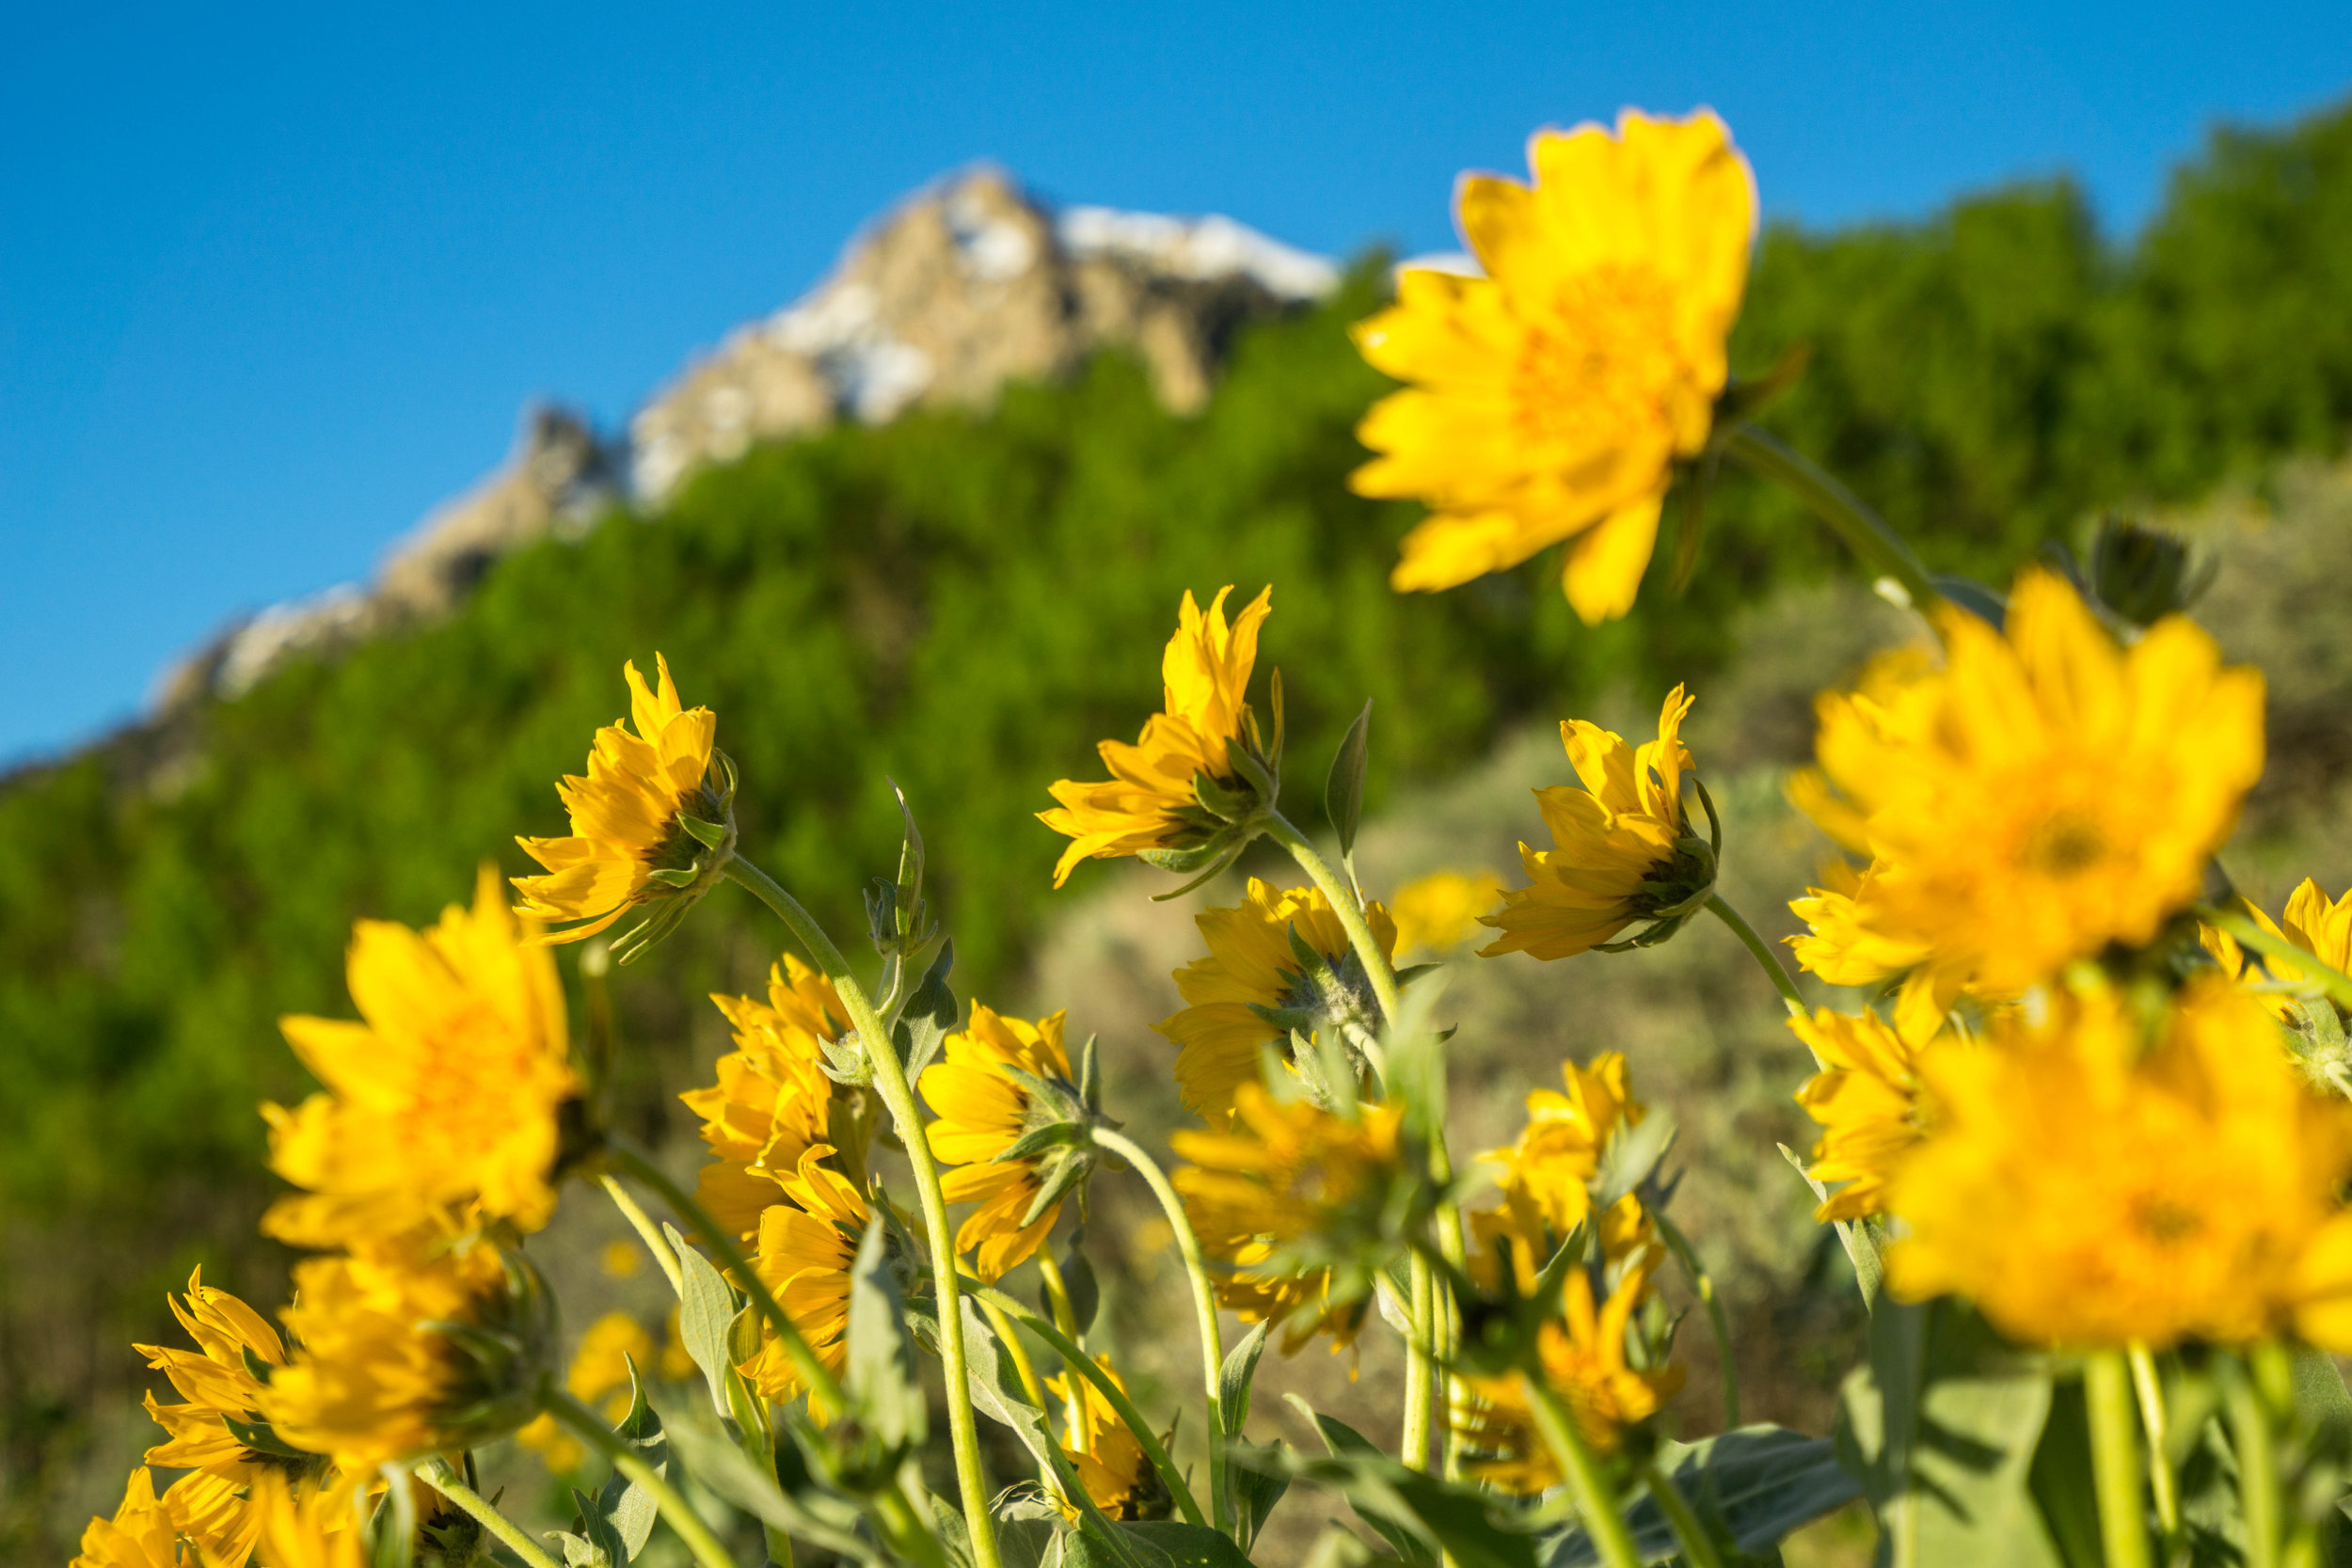 The best part about Sierra wildflowers is the varied blooming periods among different species, allowing them to be spotted from May through September. These flowers are the Arrow-leaved Balsam-root.